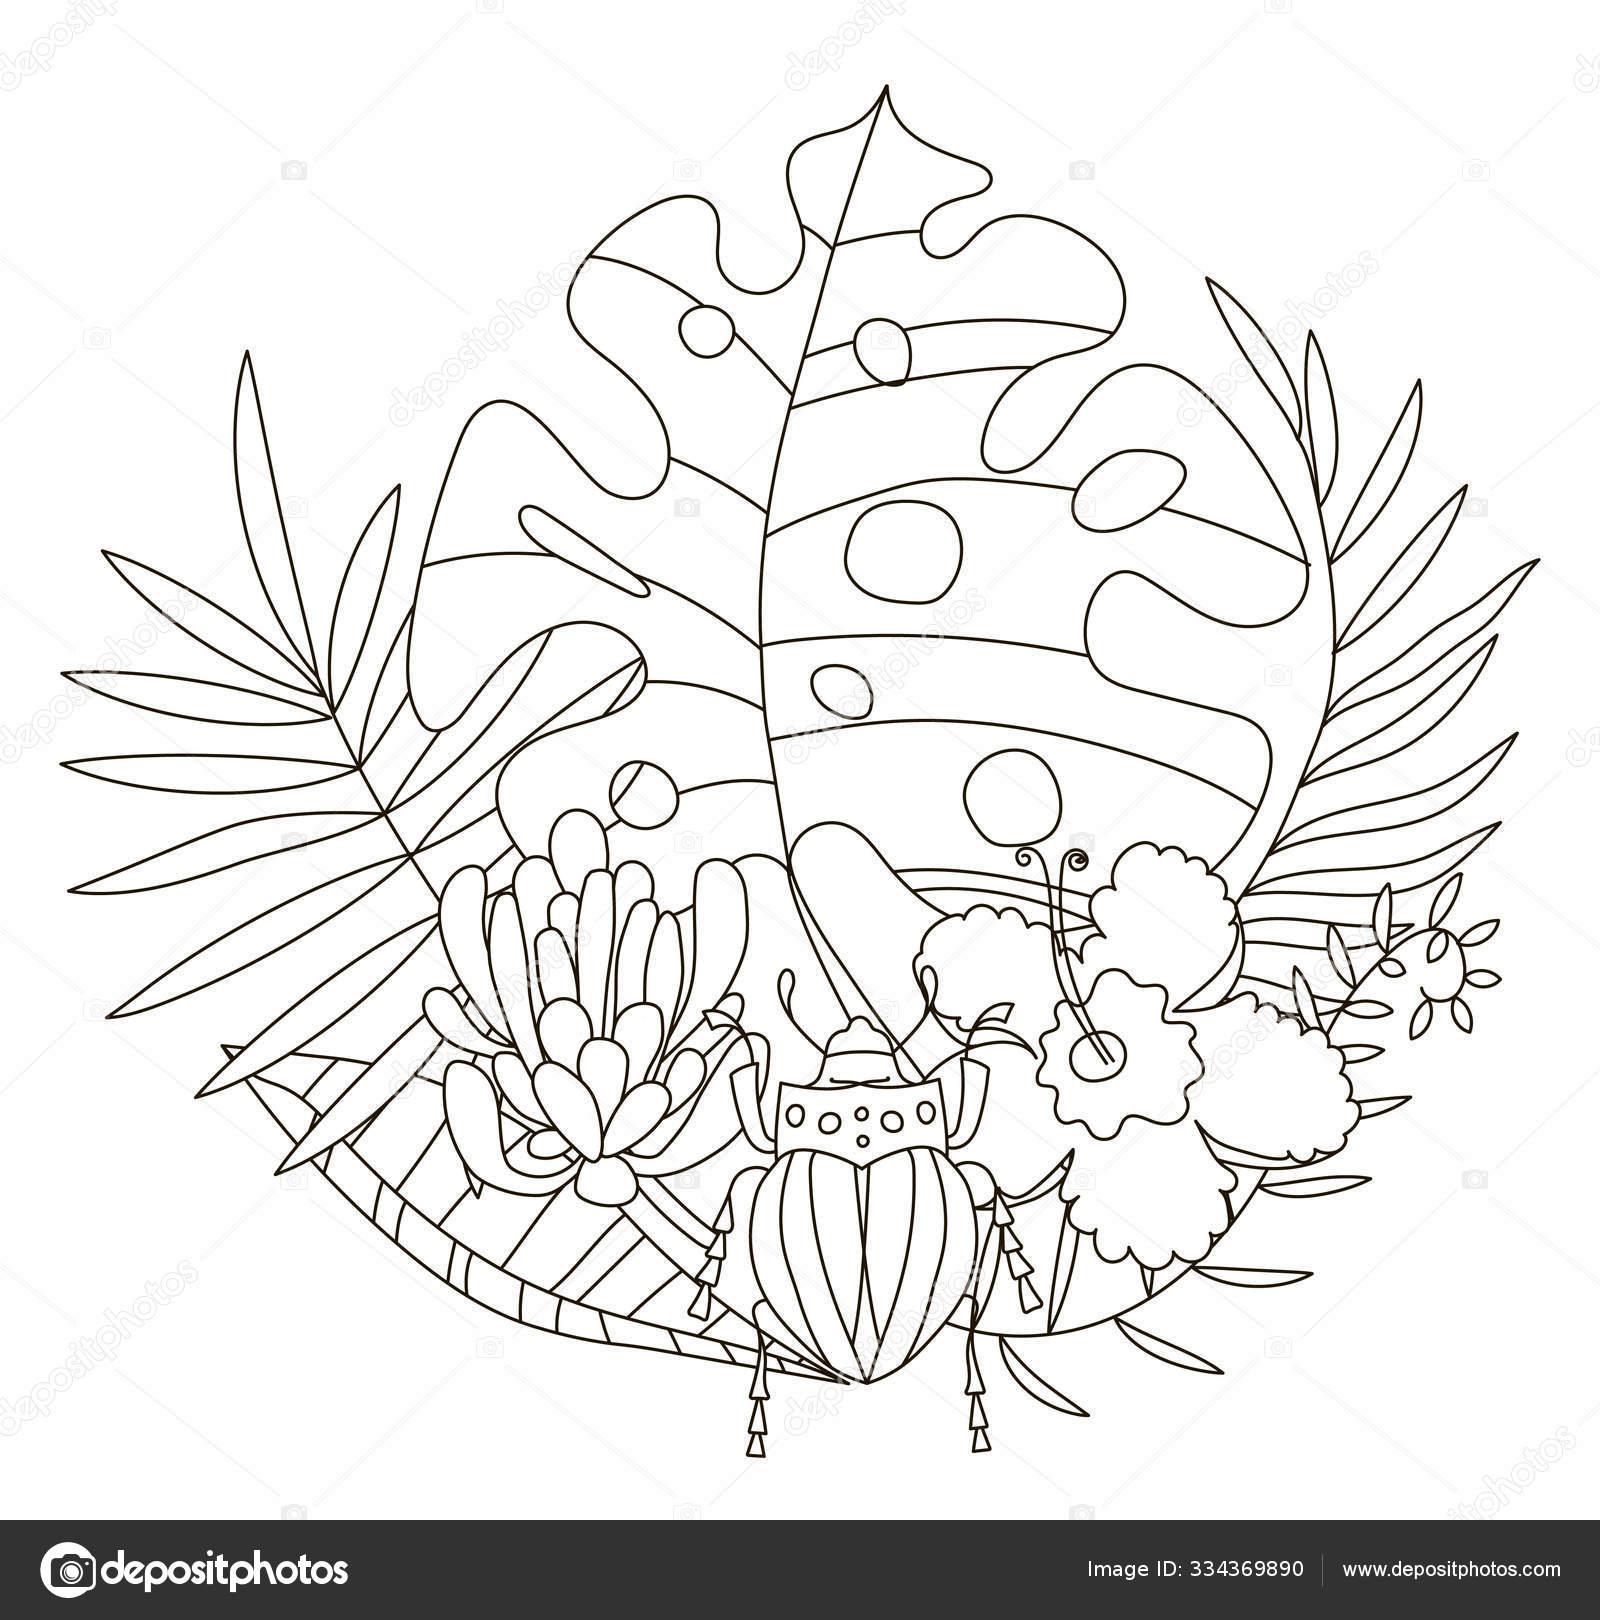 flower drawings to print and color | Download this coloring sheet ... | 1620x1600